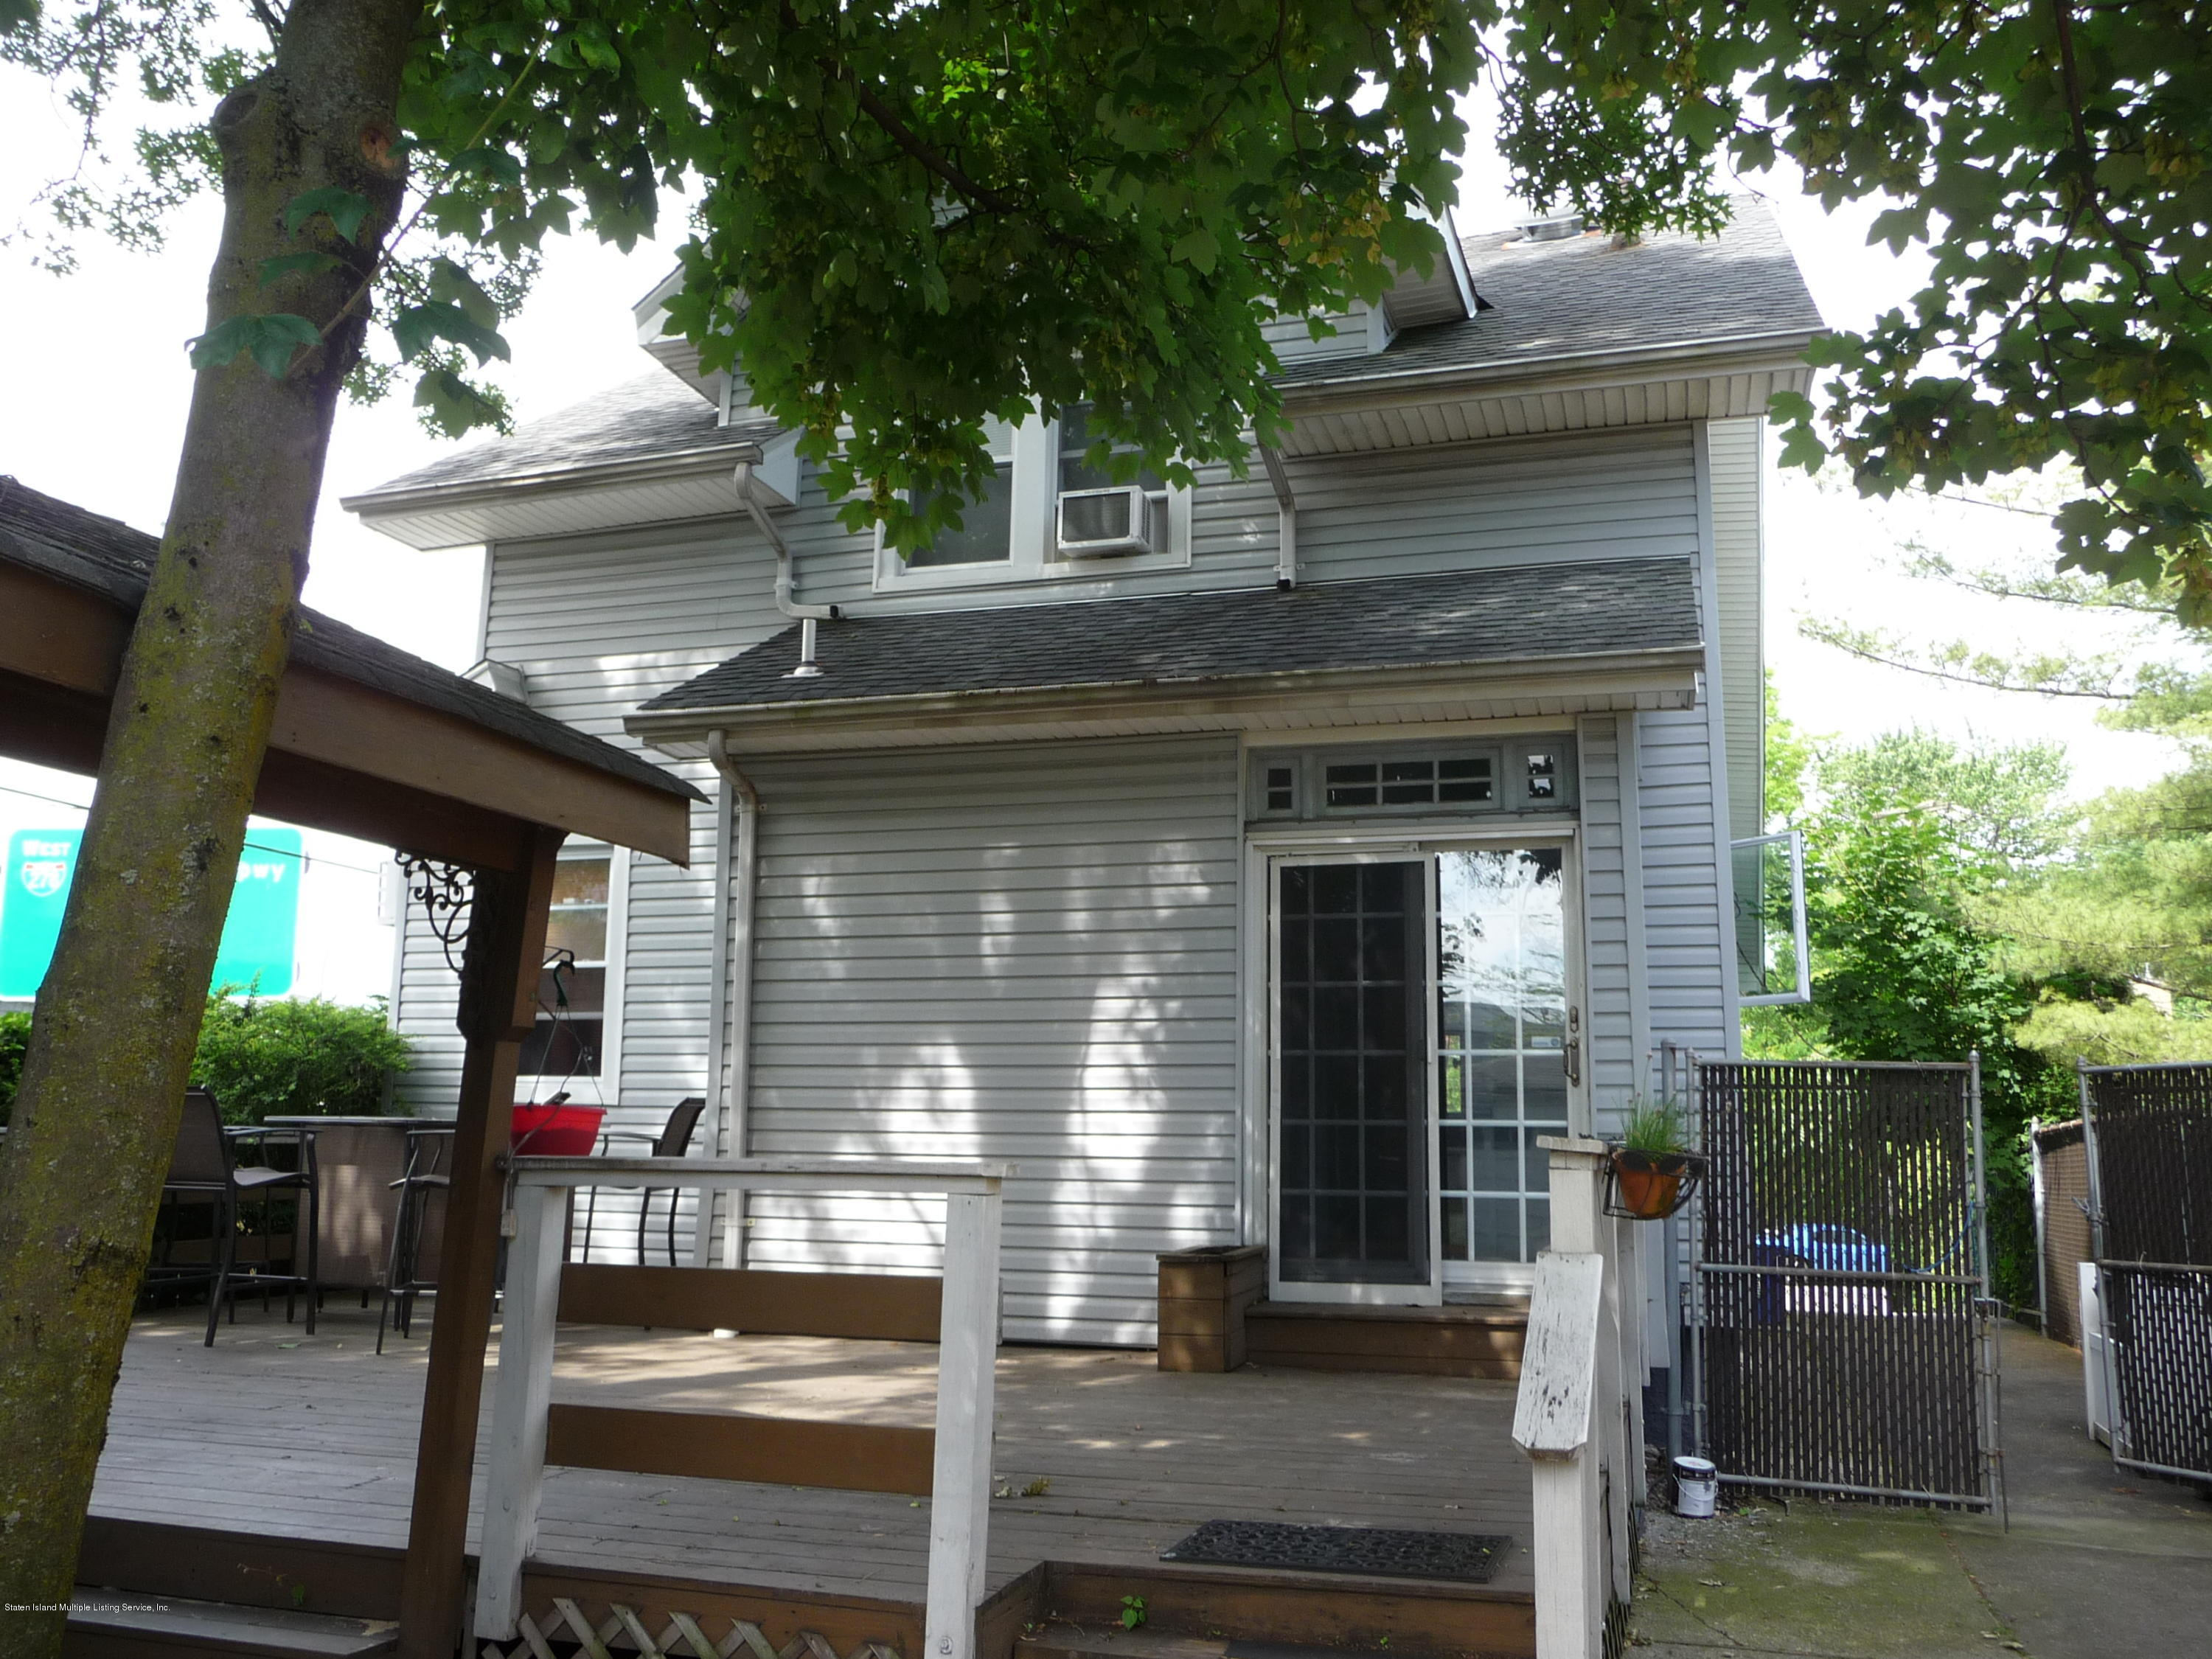 Single Family - Detached 77 Todt Hill Road  Staten Island, NY 10314, MLS-1129718-49